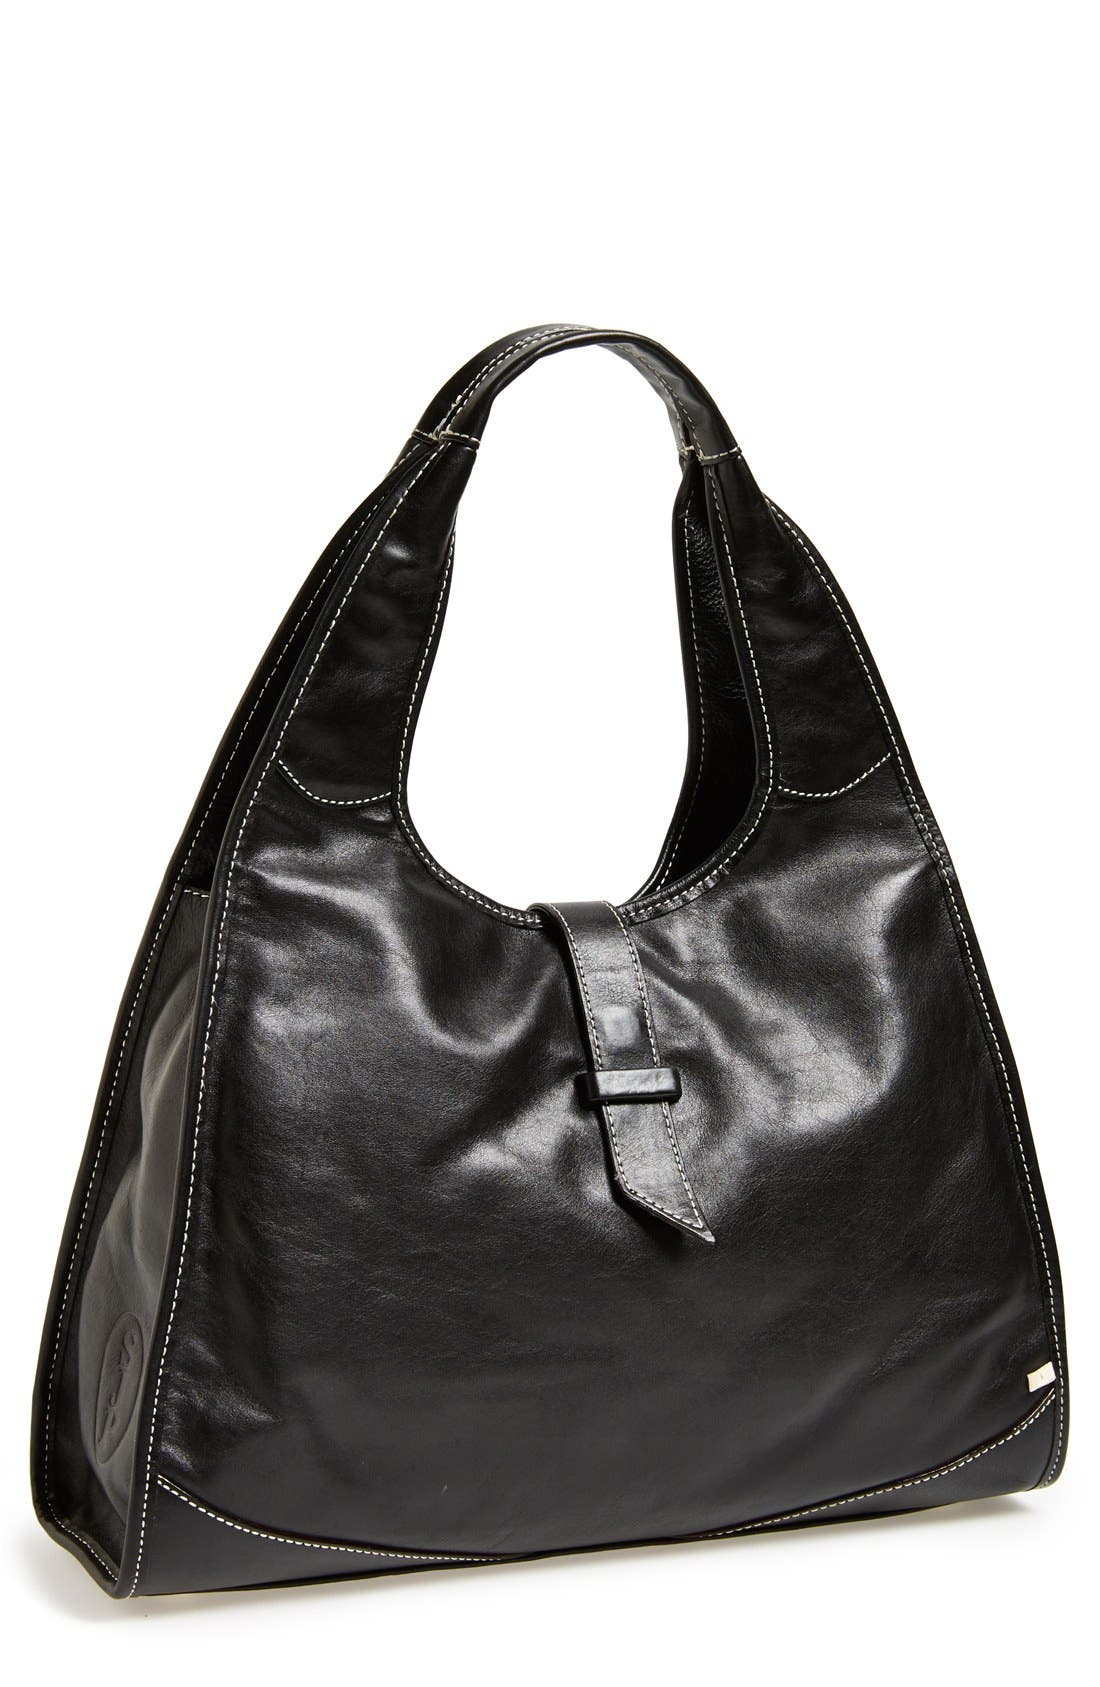 Alternate Image 1 Selected - SJP by Sarah Jessica Parker 'New Yorker' Leather Hobo